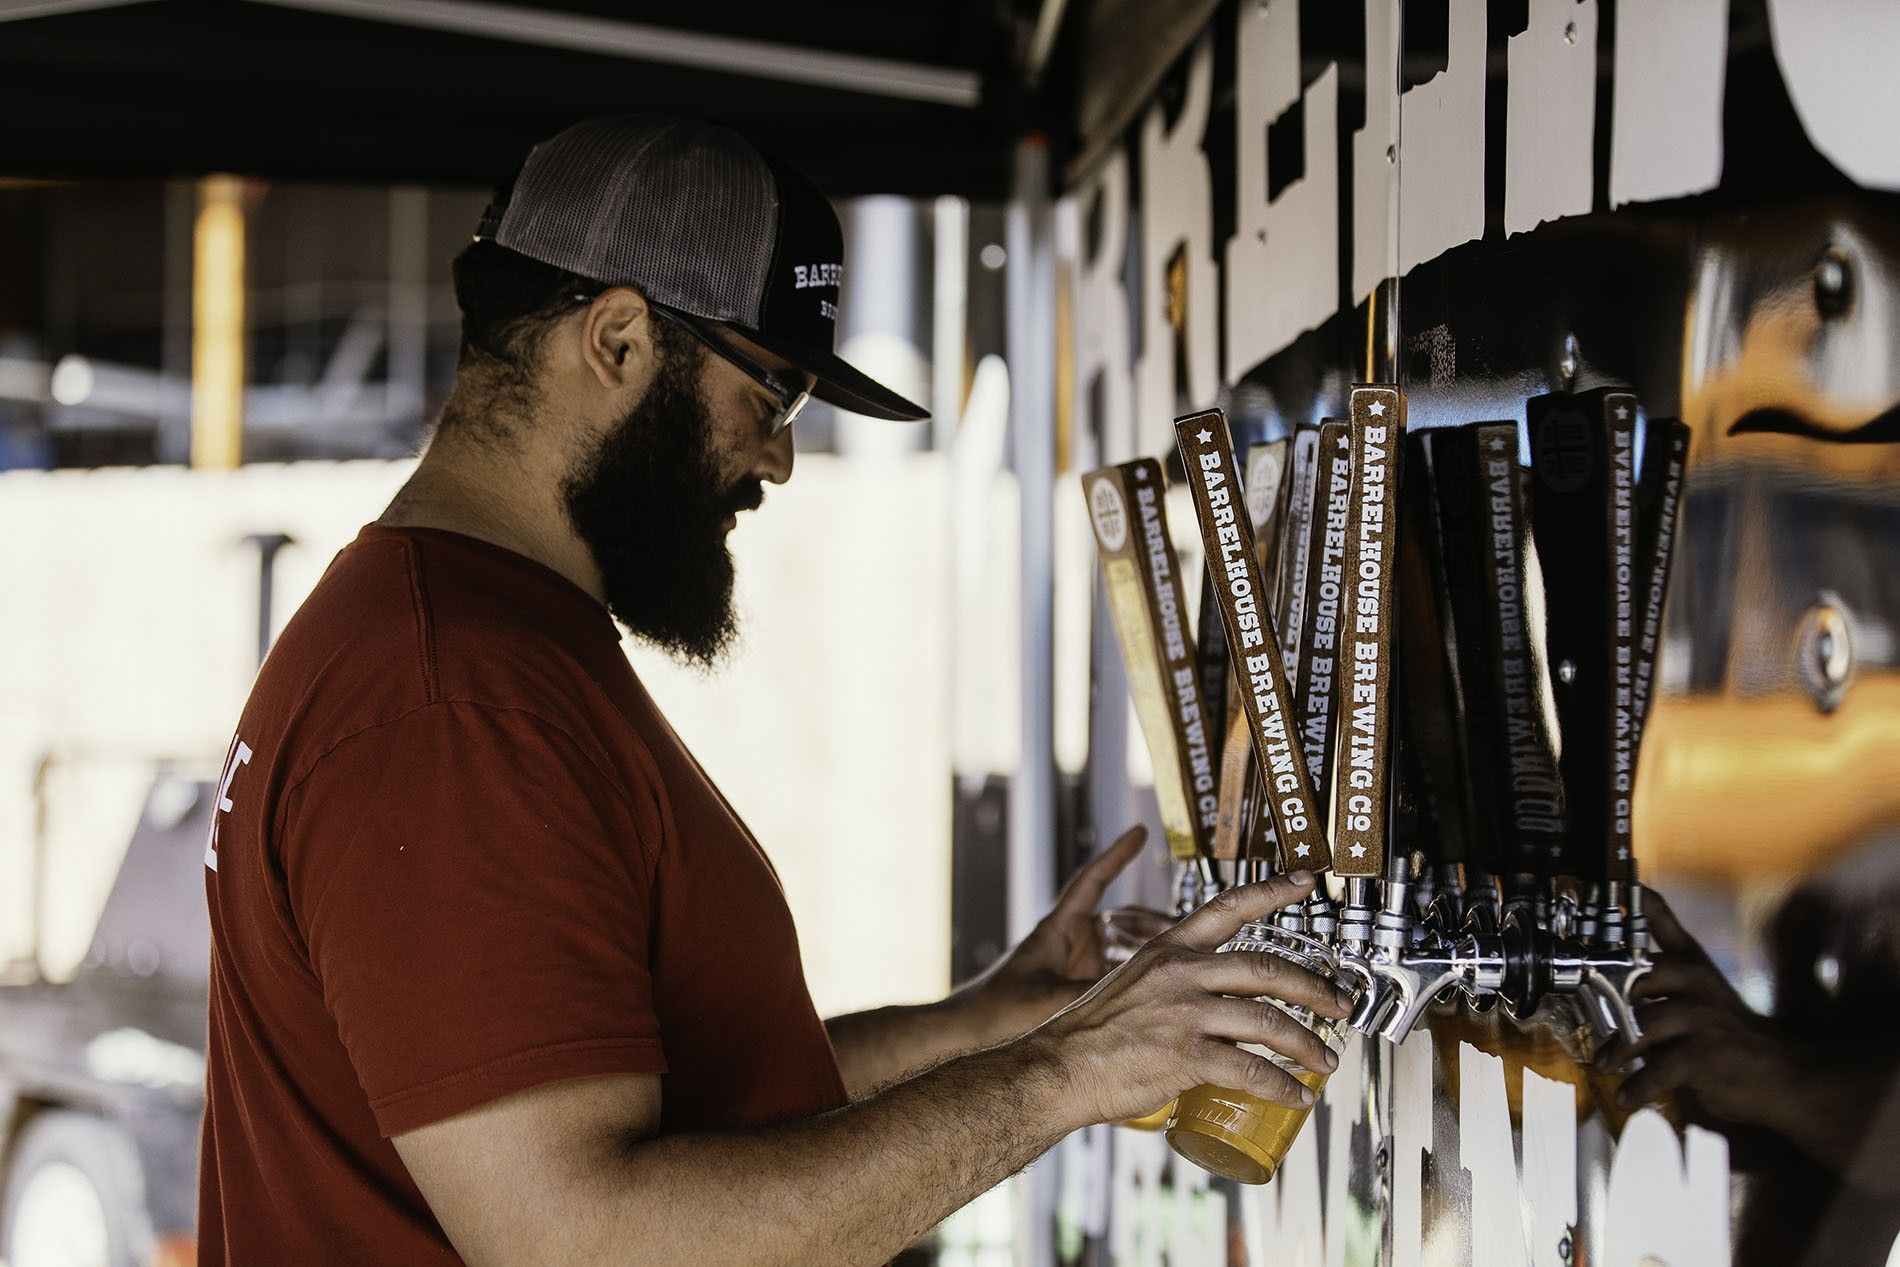 """The craft brewery and gardens, where gigs are performed on a rusty flatbed truck, opened in 2012. """"Back then, very few people knew [the area] existed,"""" recalls Chris Vaughn, one of BarrelHouse's three founders. """"Now, it's become one of the hottest attractions in the county."""""""